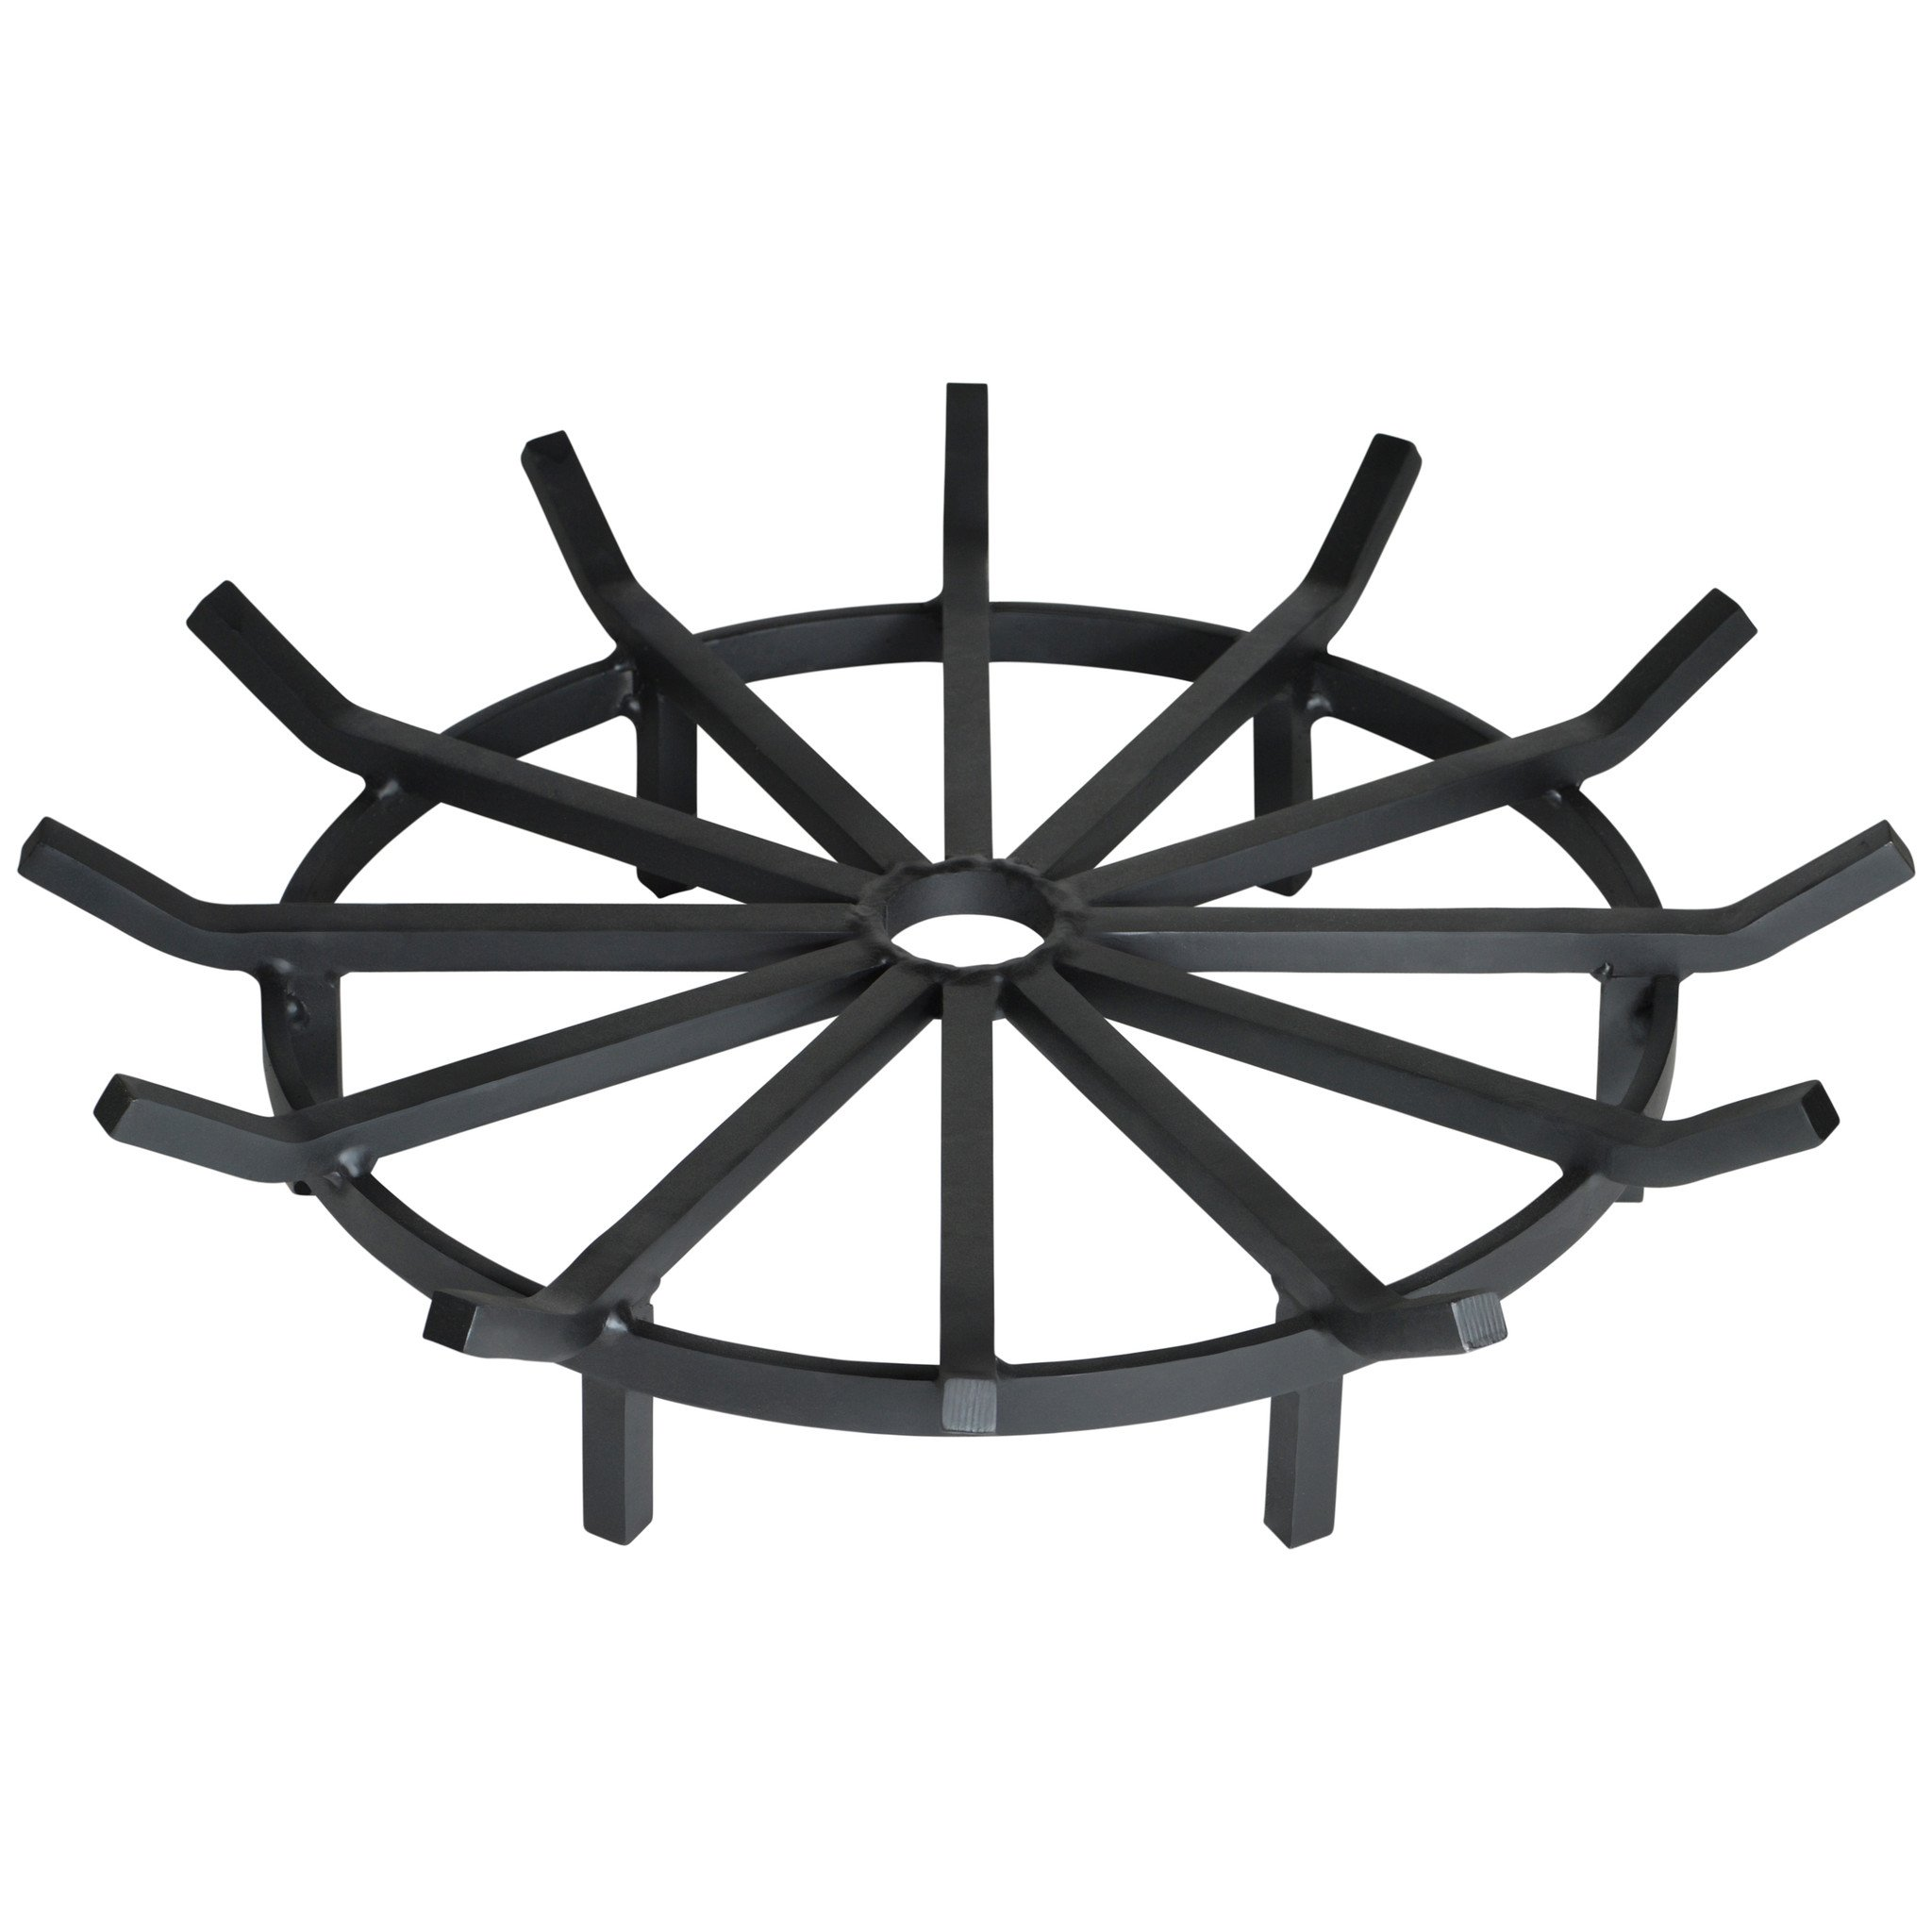 Heritage Products Super Heavy Duty Wagon Wheel Fire Pit Grate 28 Inch - Made in the USA